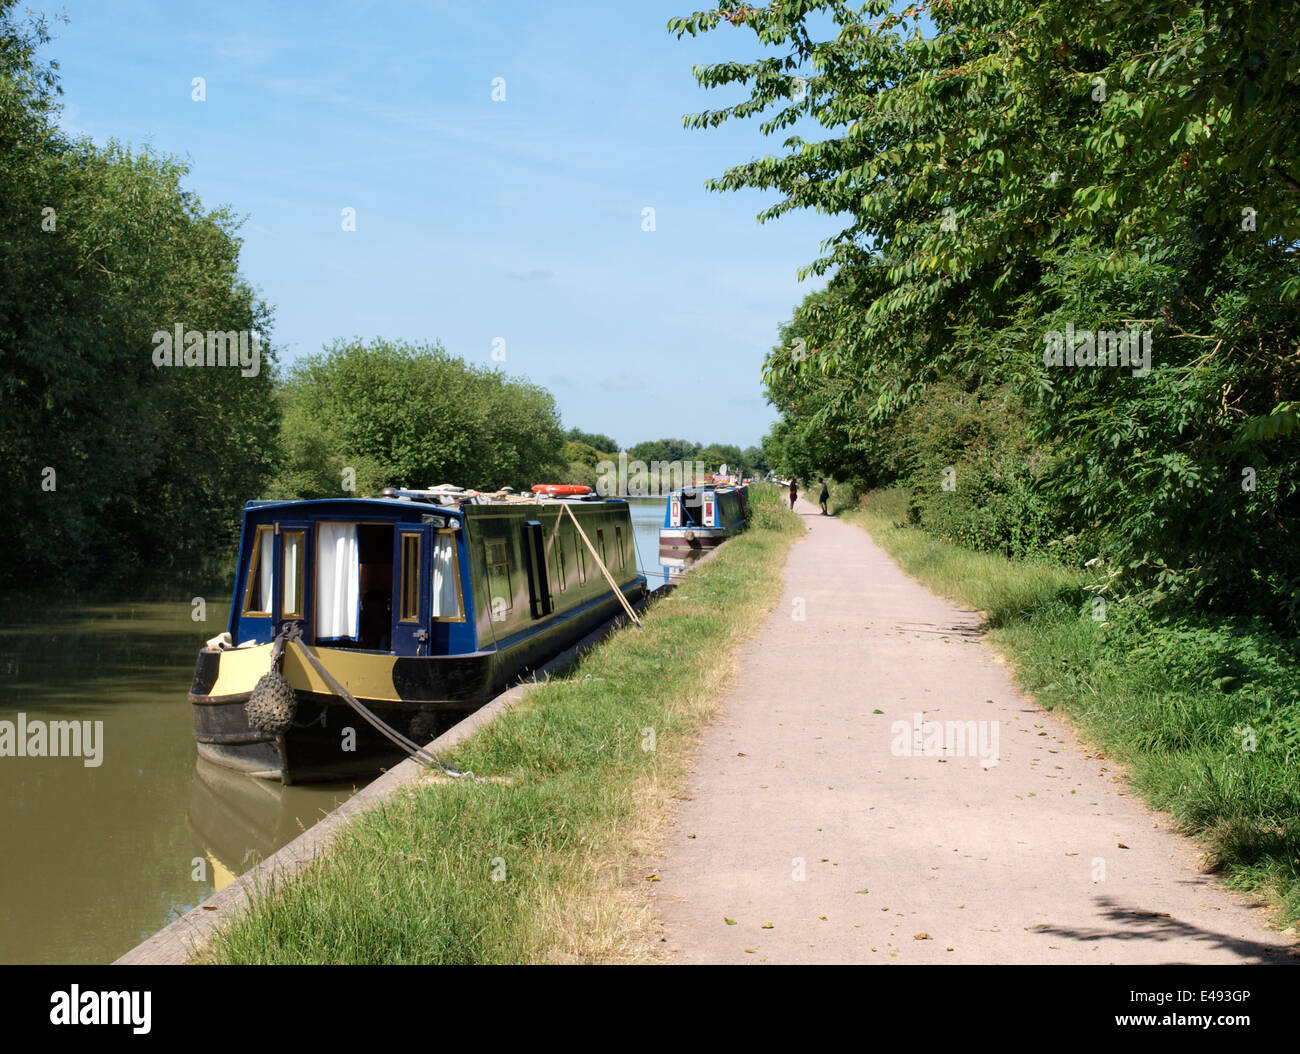 Towpath along the Kennet and Avon Canal, Devizes, Wiltshire, UK - Stock Image